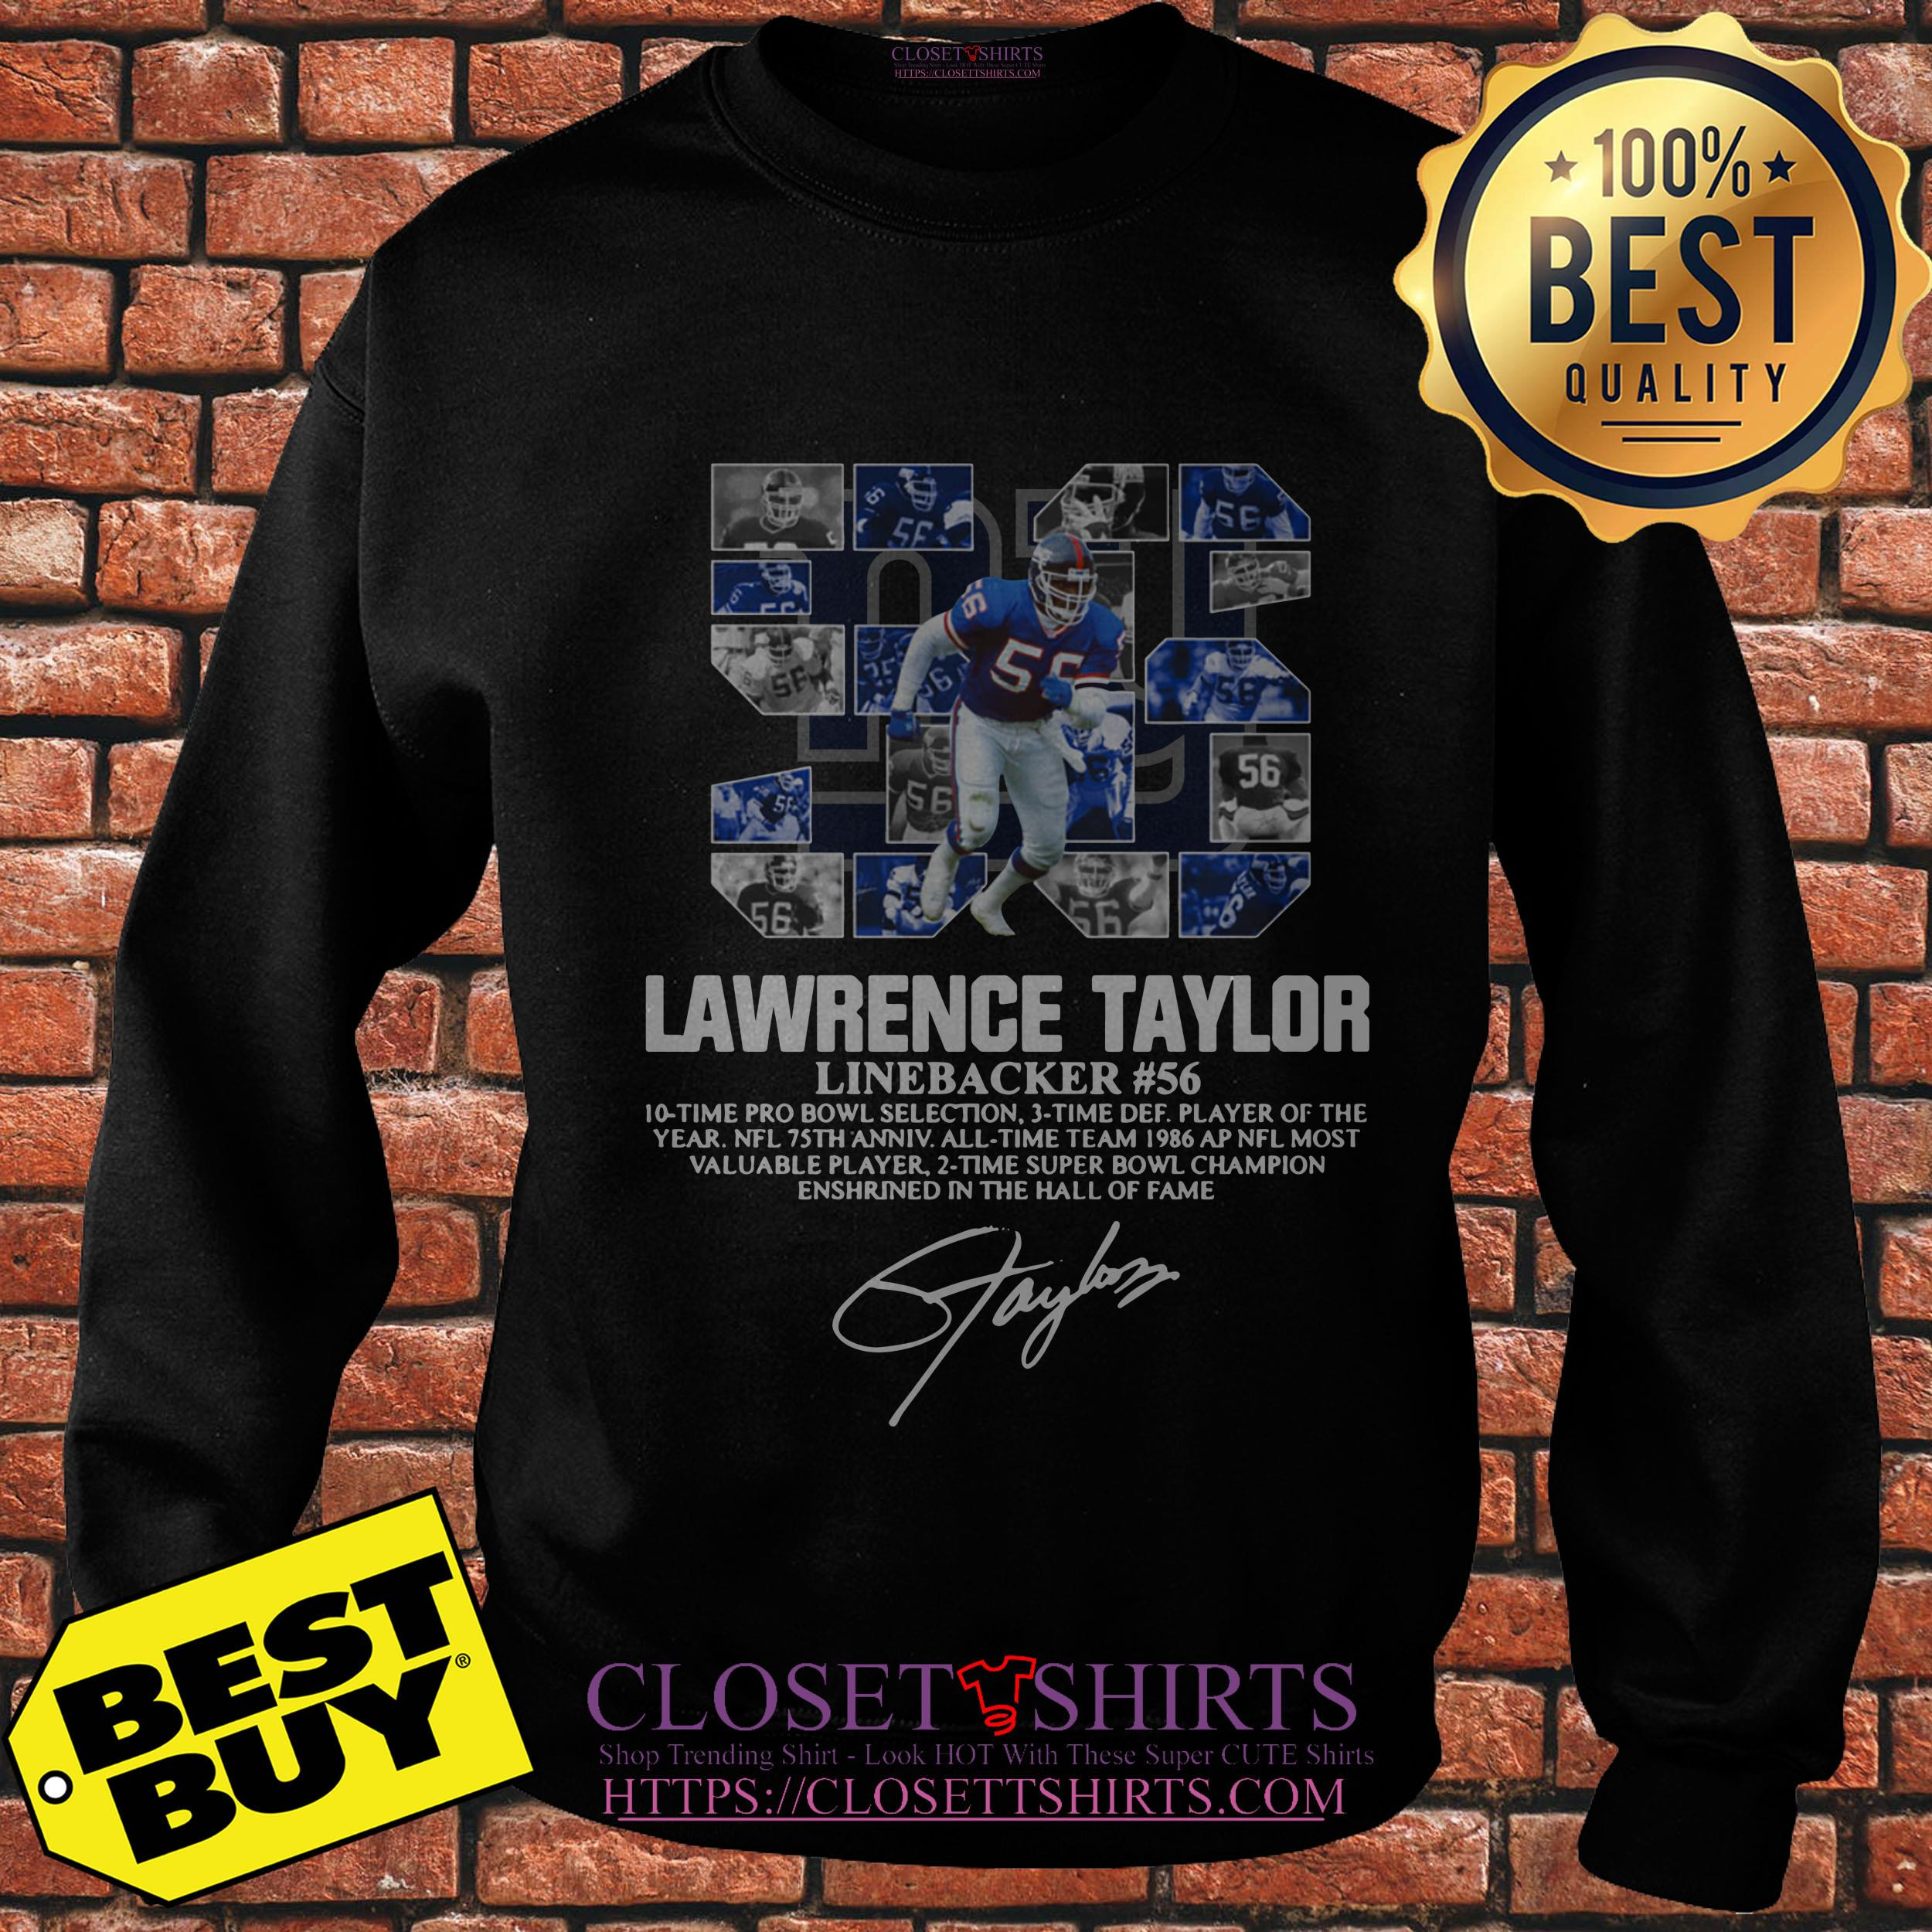 Lawrence Taylor Linebacker 56 New York Giants Signature sweatshirt